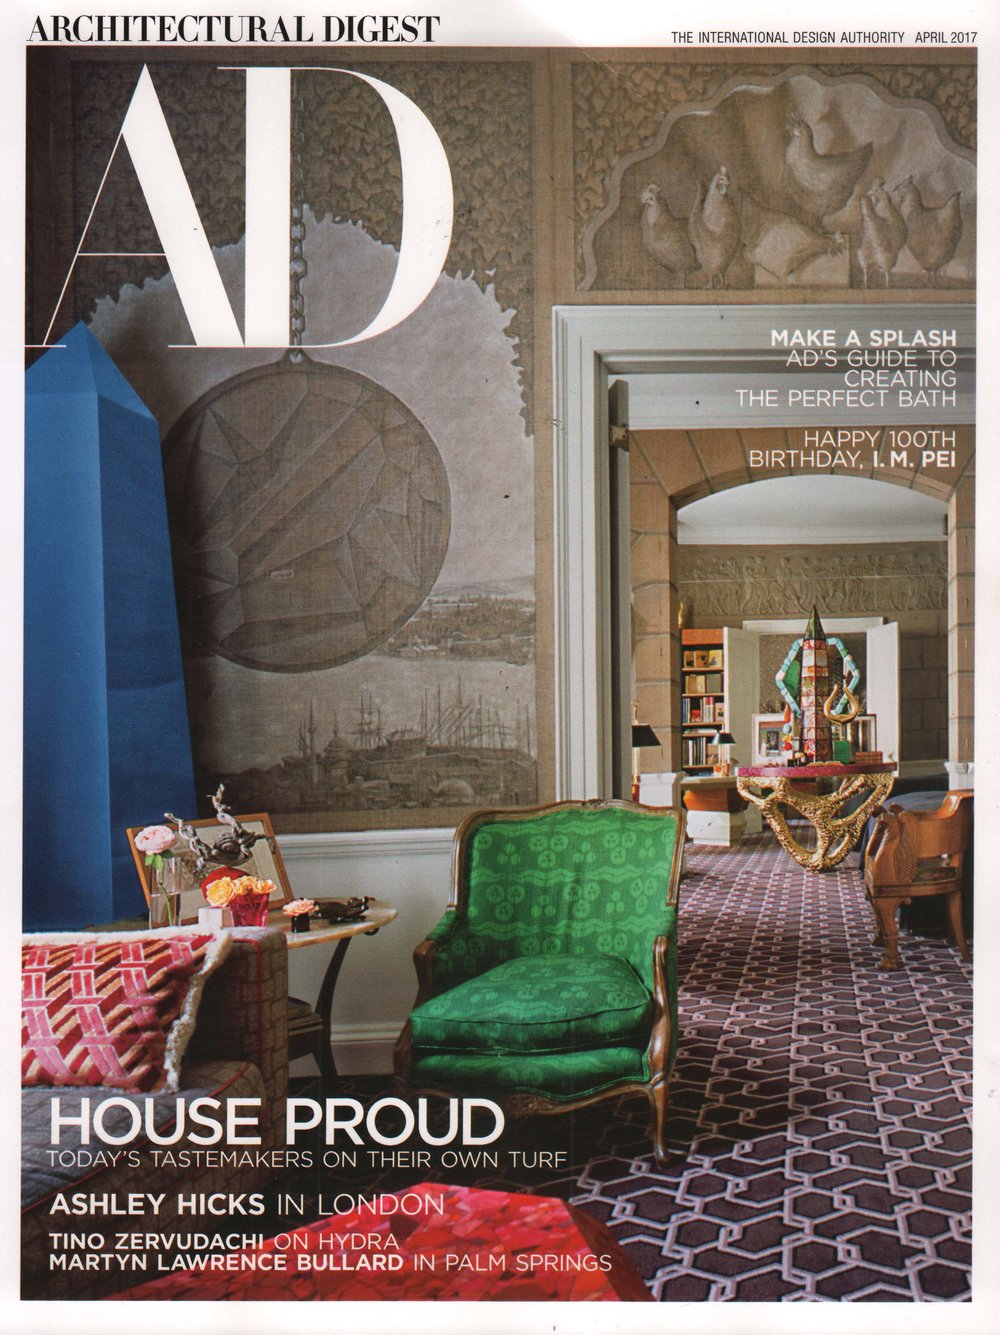 Based Upon_London_Art Design_Press_Architectural Digest USA 2017